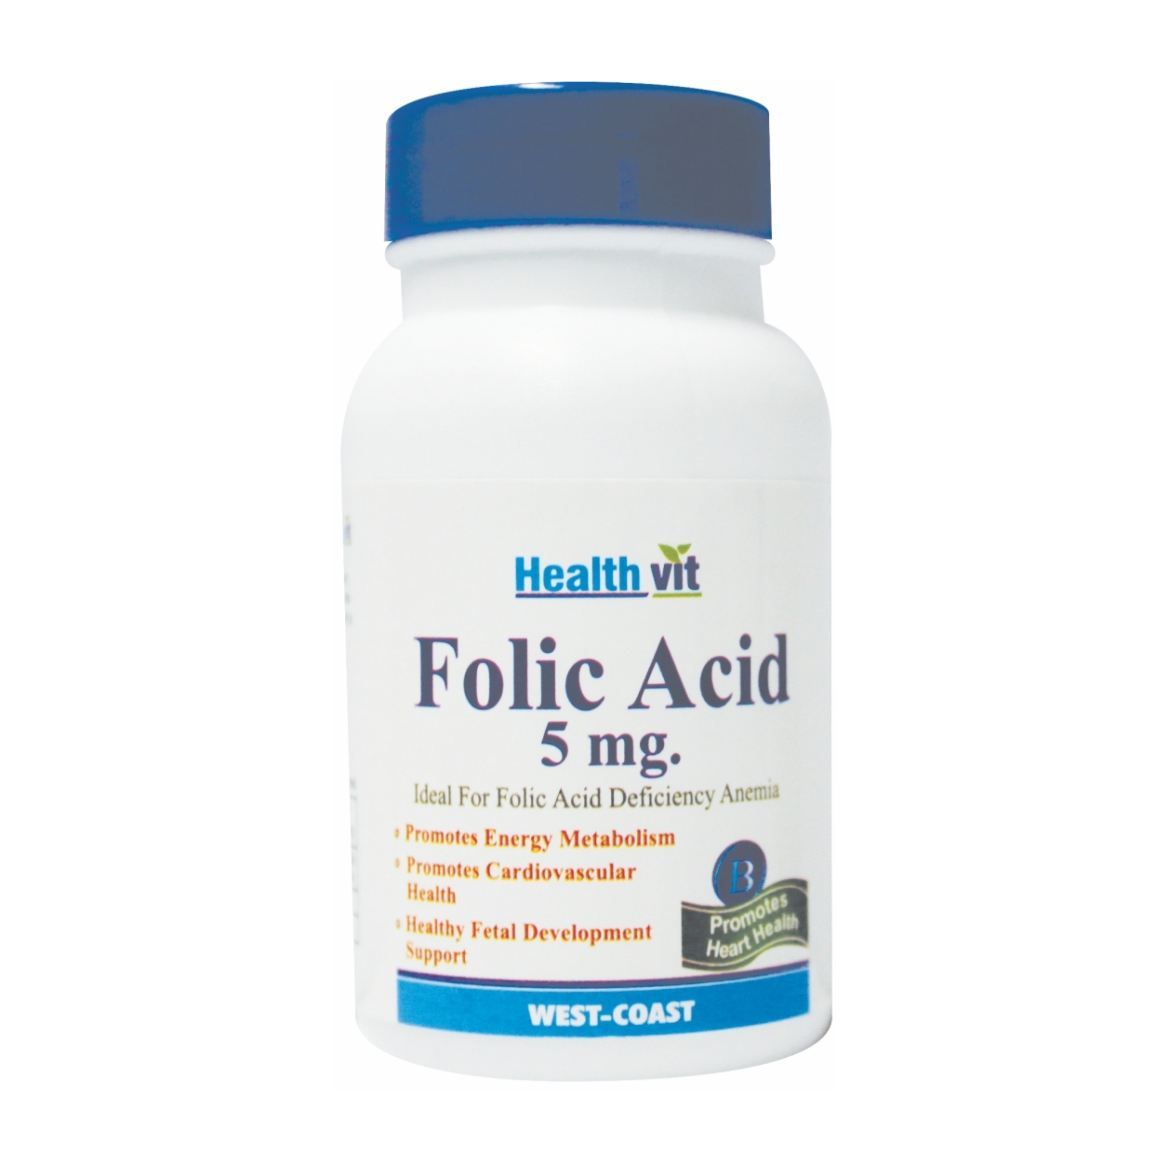 Picture of HealthVit Folic Acid 5mg 60 Tablets (Pack Of 2) for Cardiac Care  ADVERTISEMENT